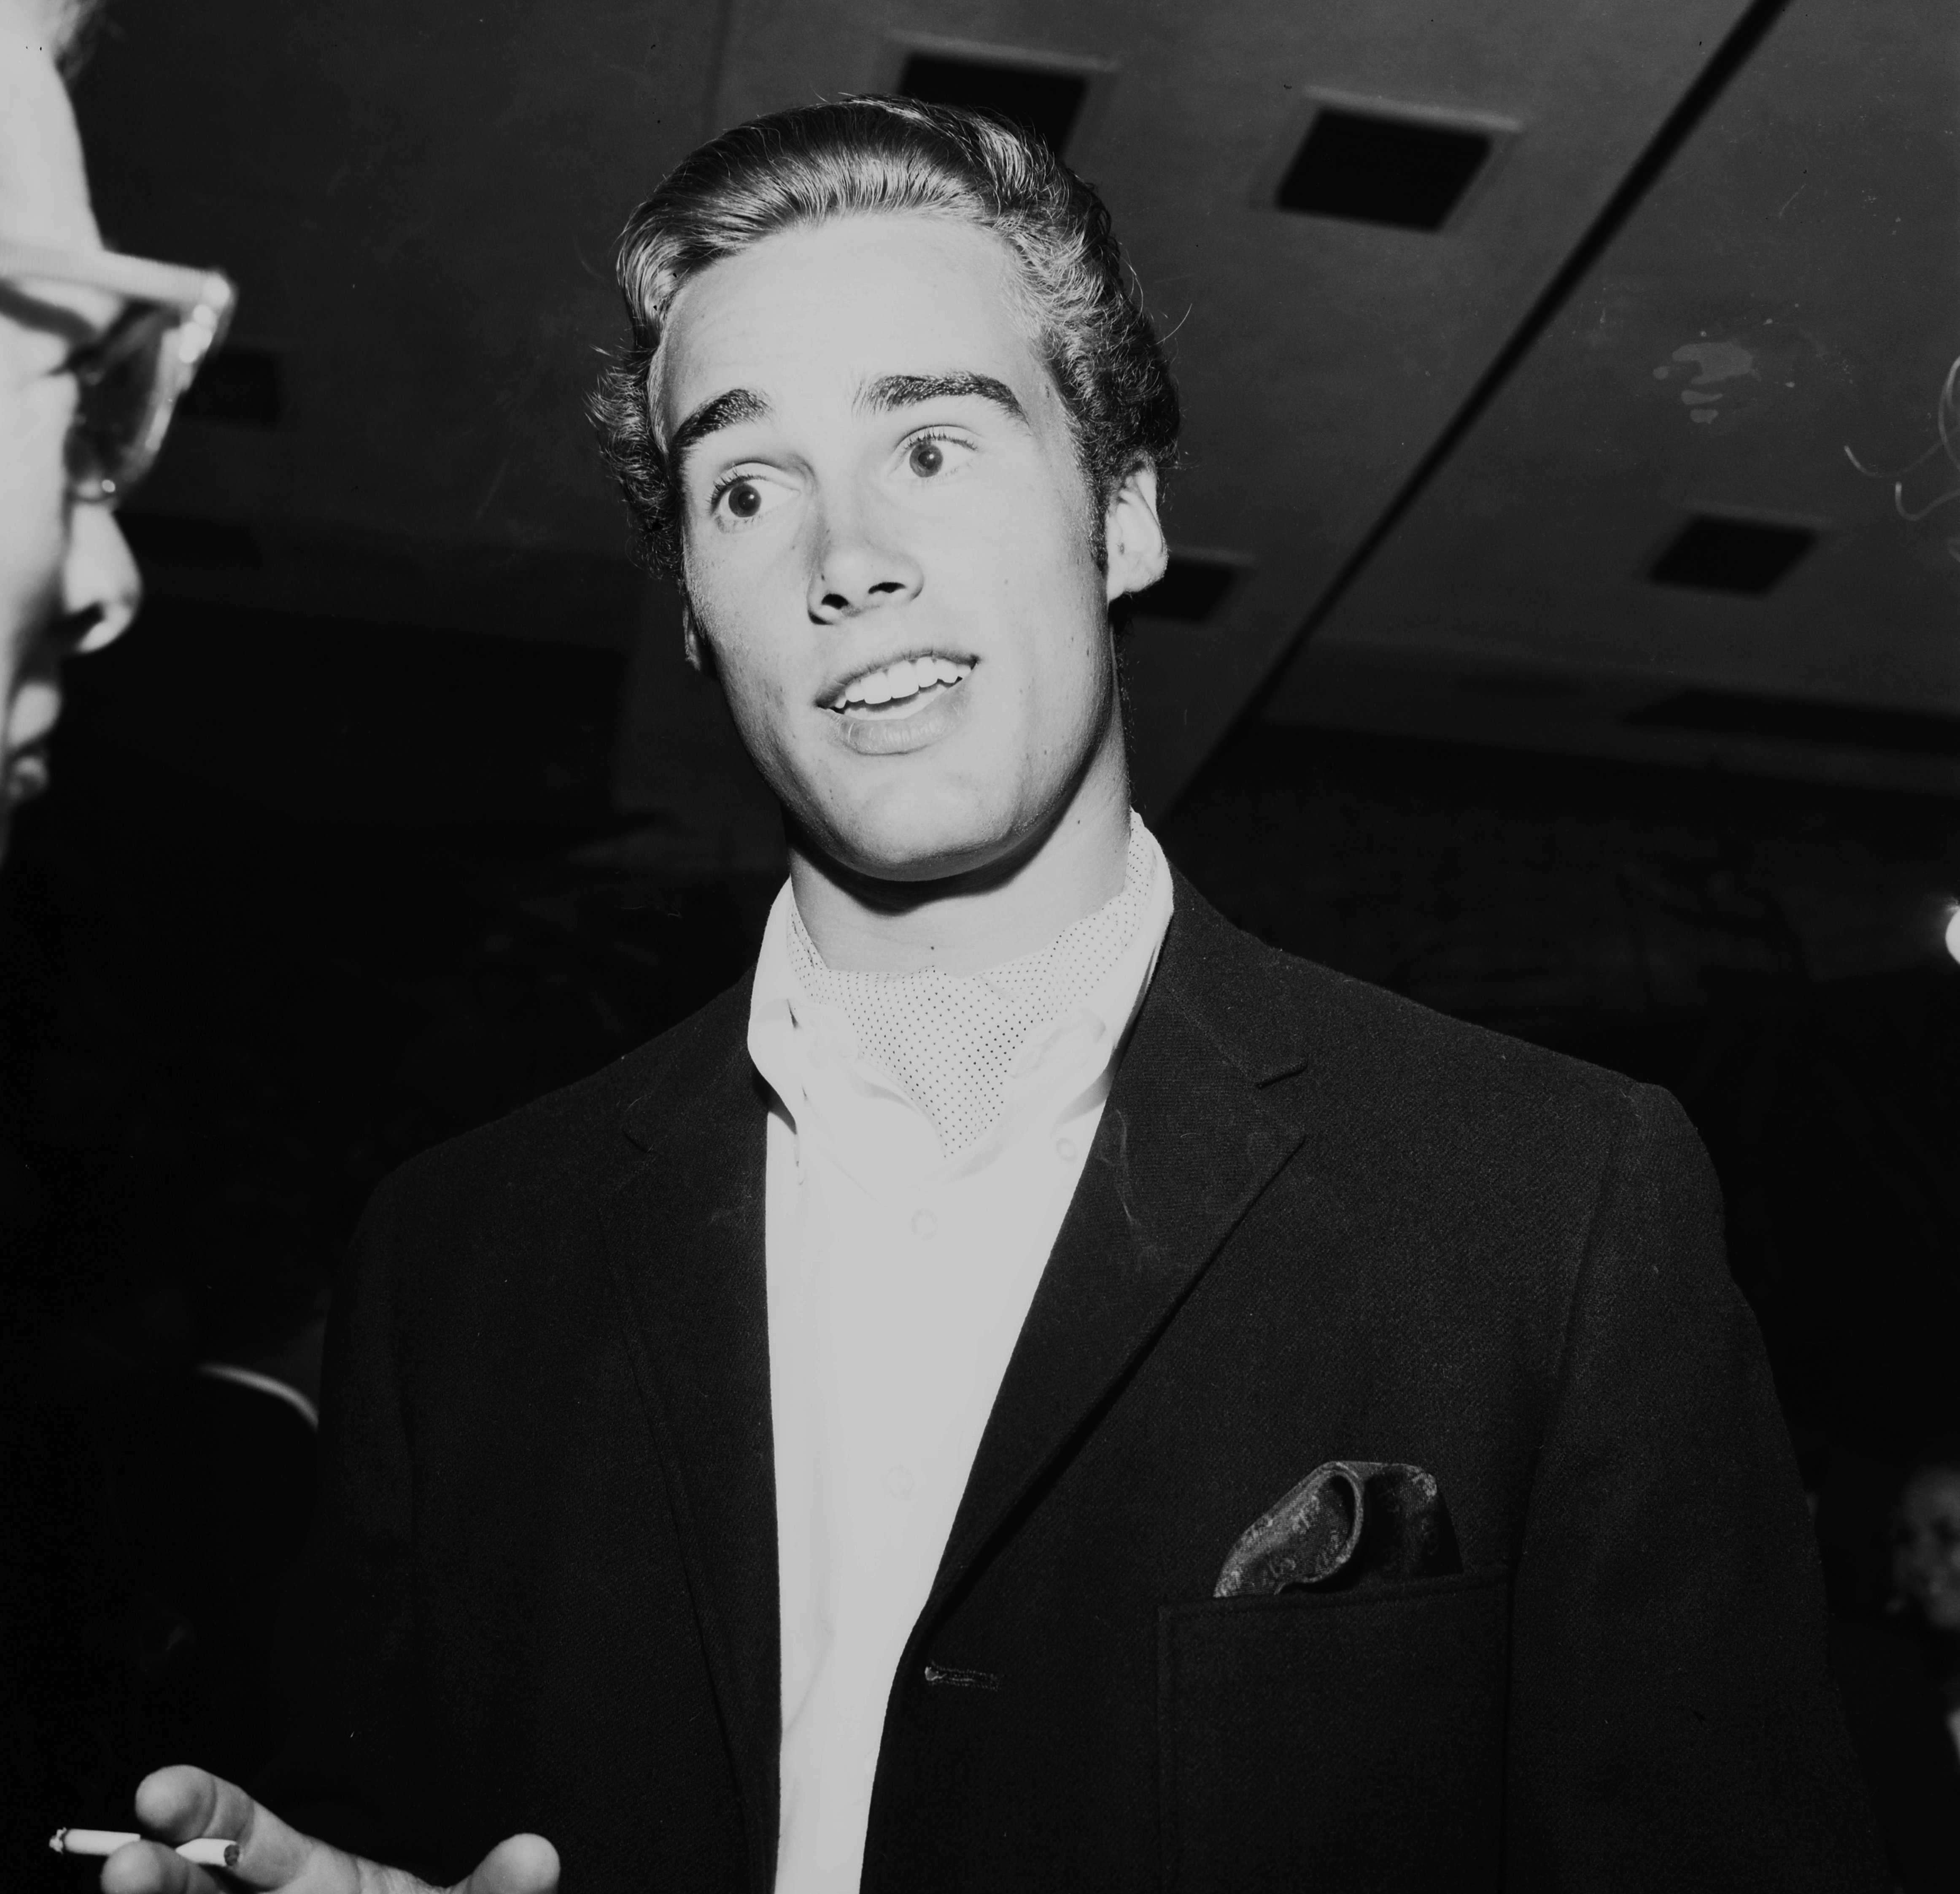 Sean Flynn attends a party on 01 January, 1961 in Los Angeles, California | Photo: Getty Images